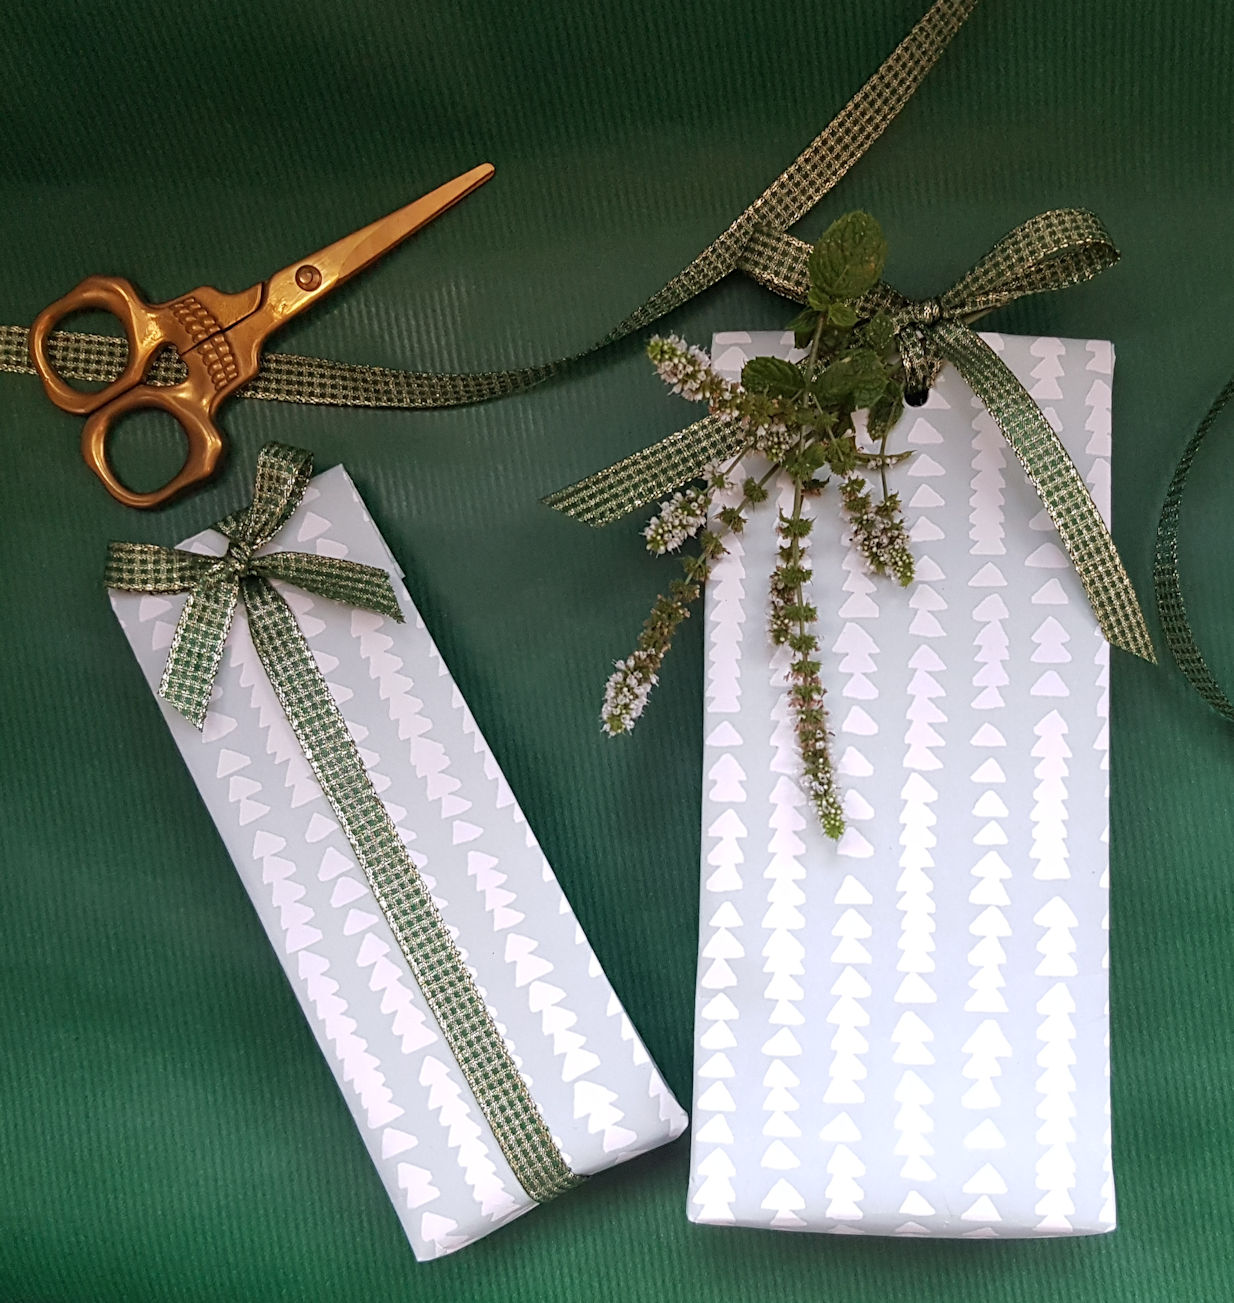 Gifts and scissors